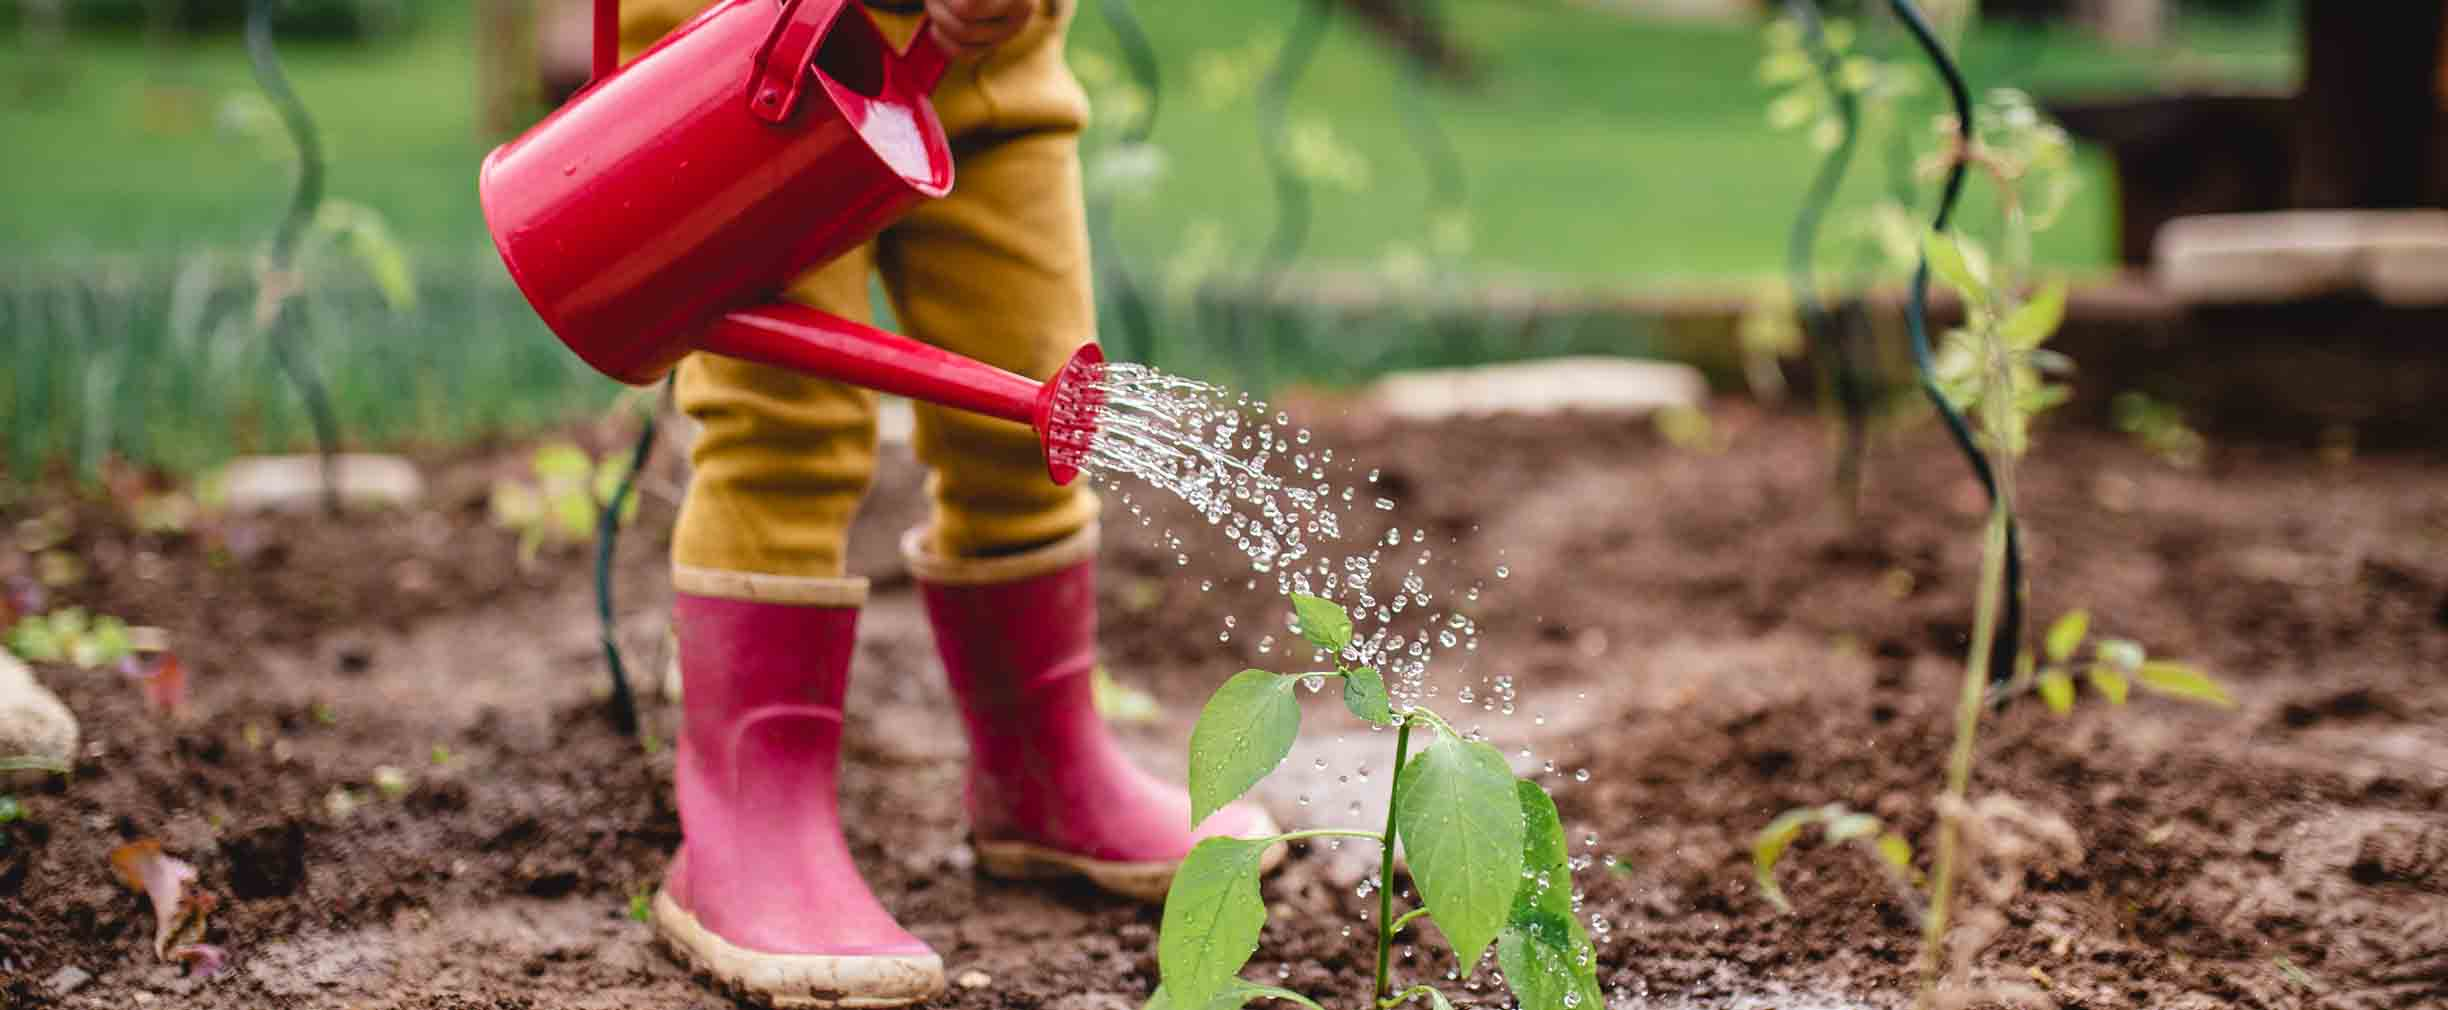 child in rainboots waters plant